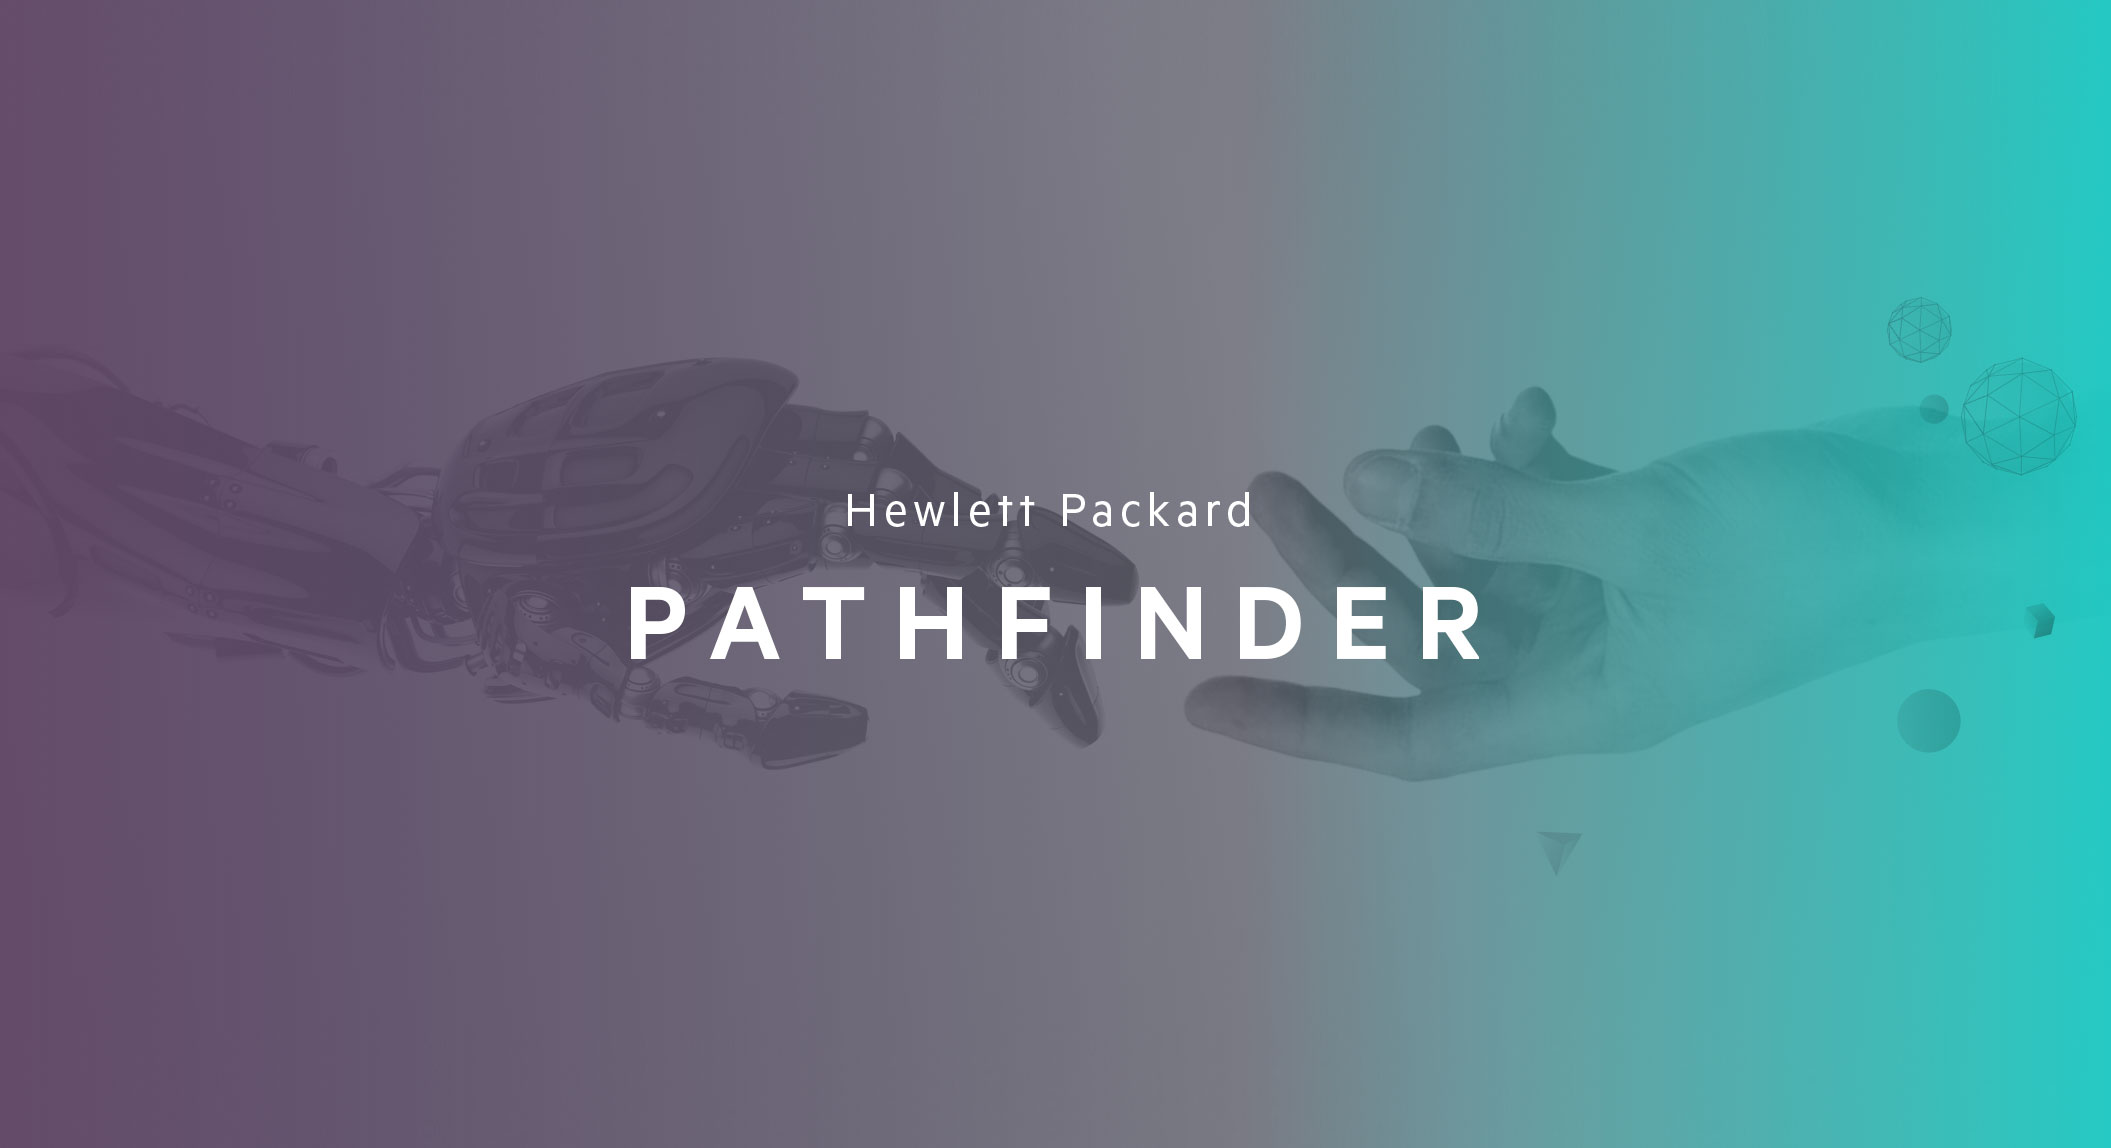 Hewlett Packard - Pathfinder